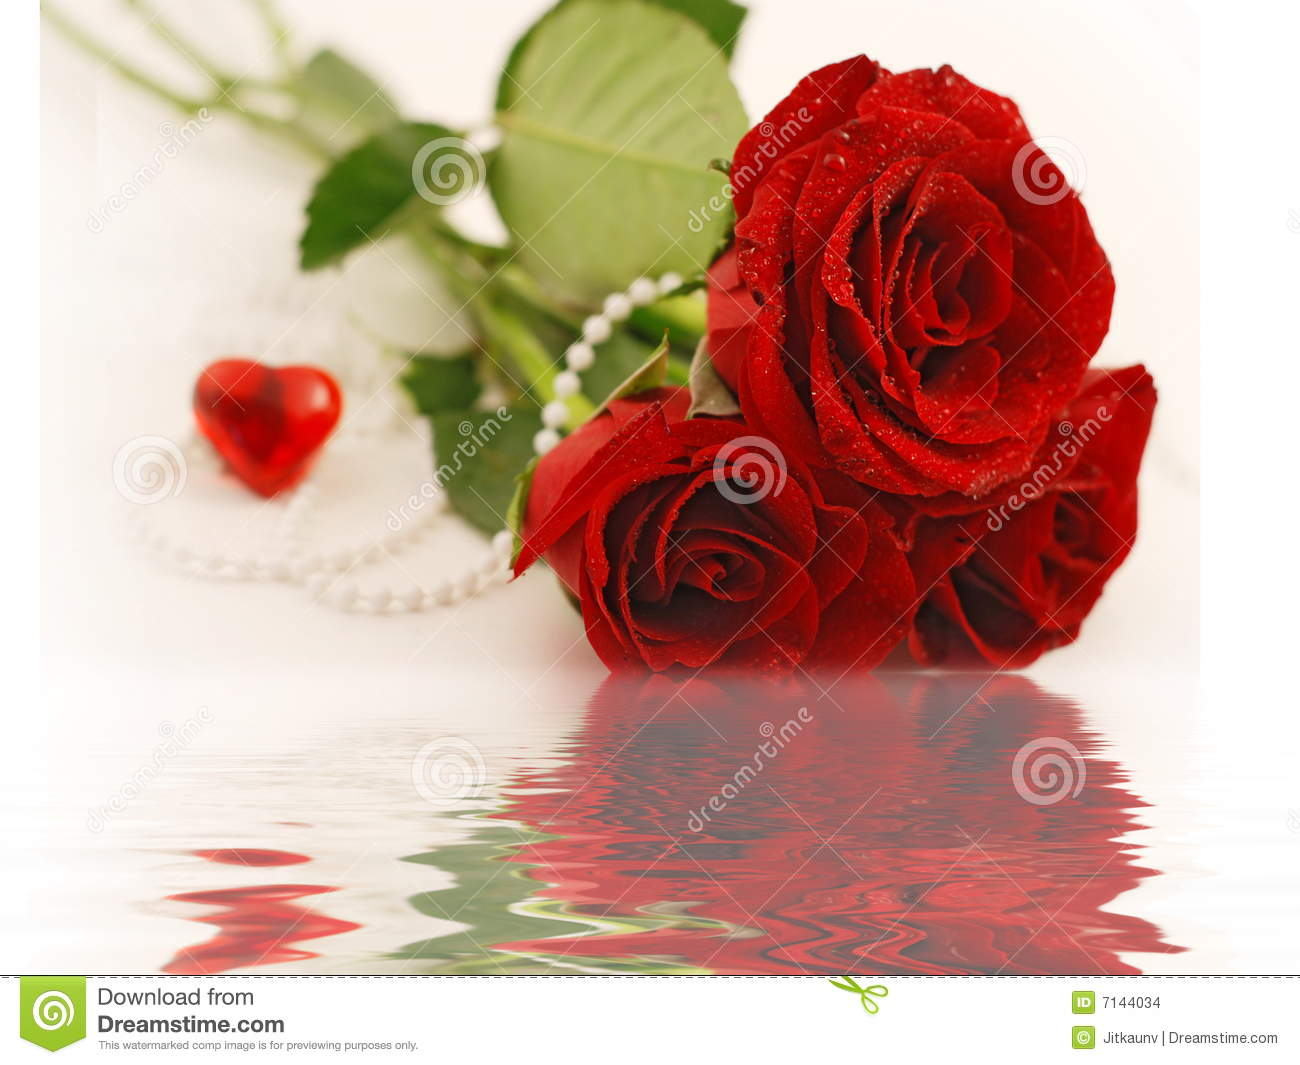 valentine rose stock images  image, Natural flower